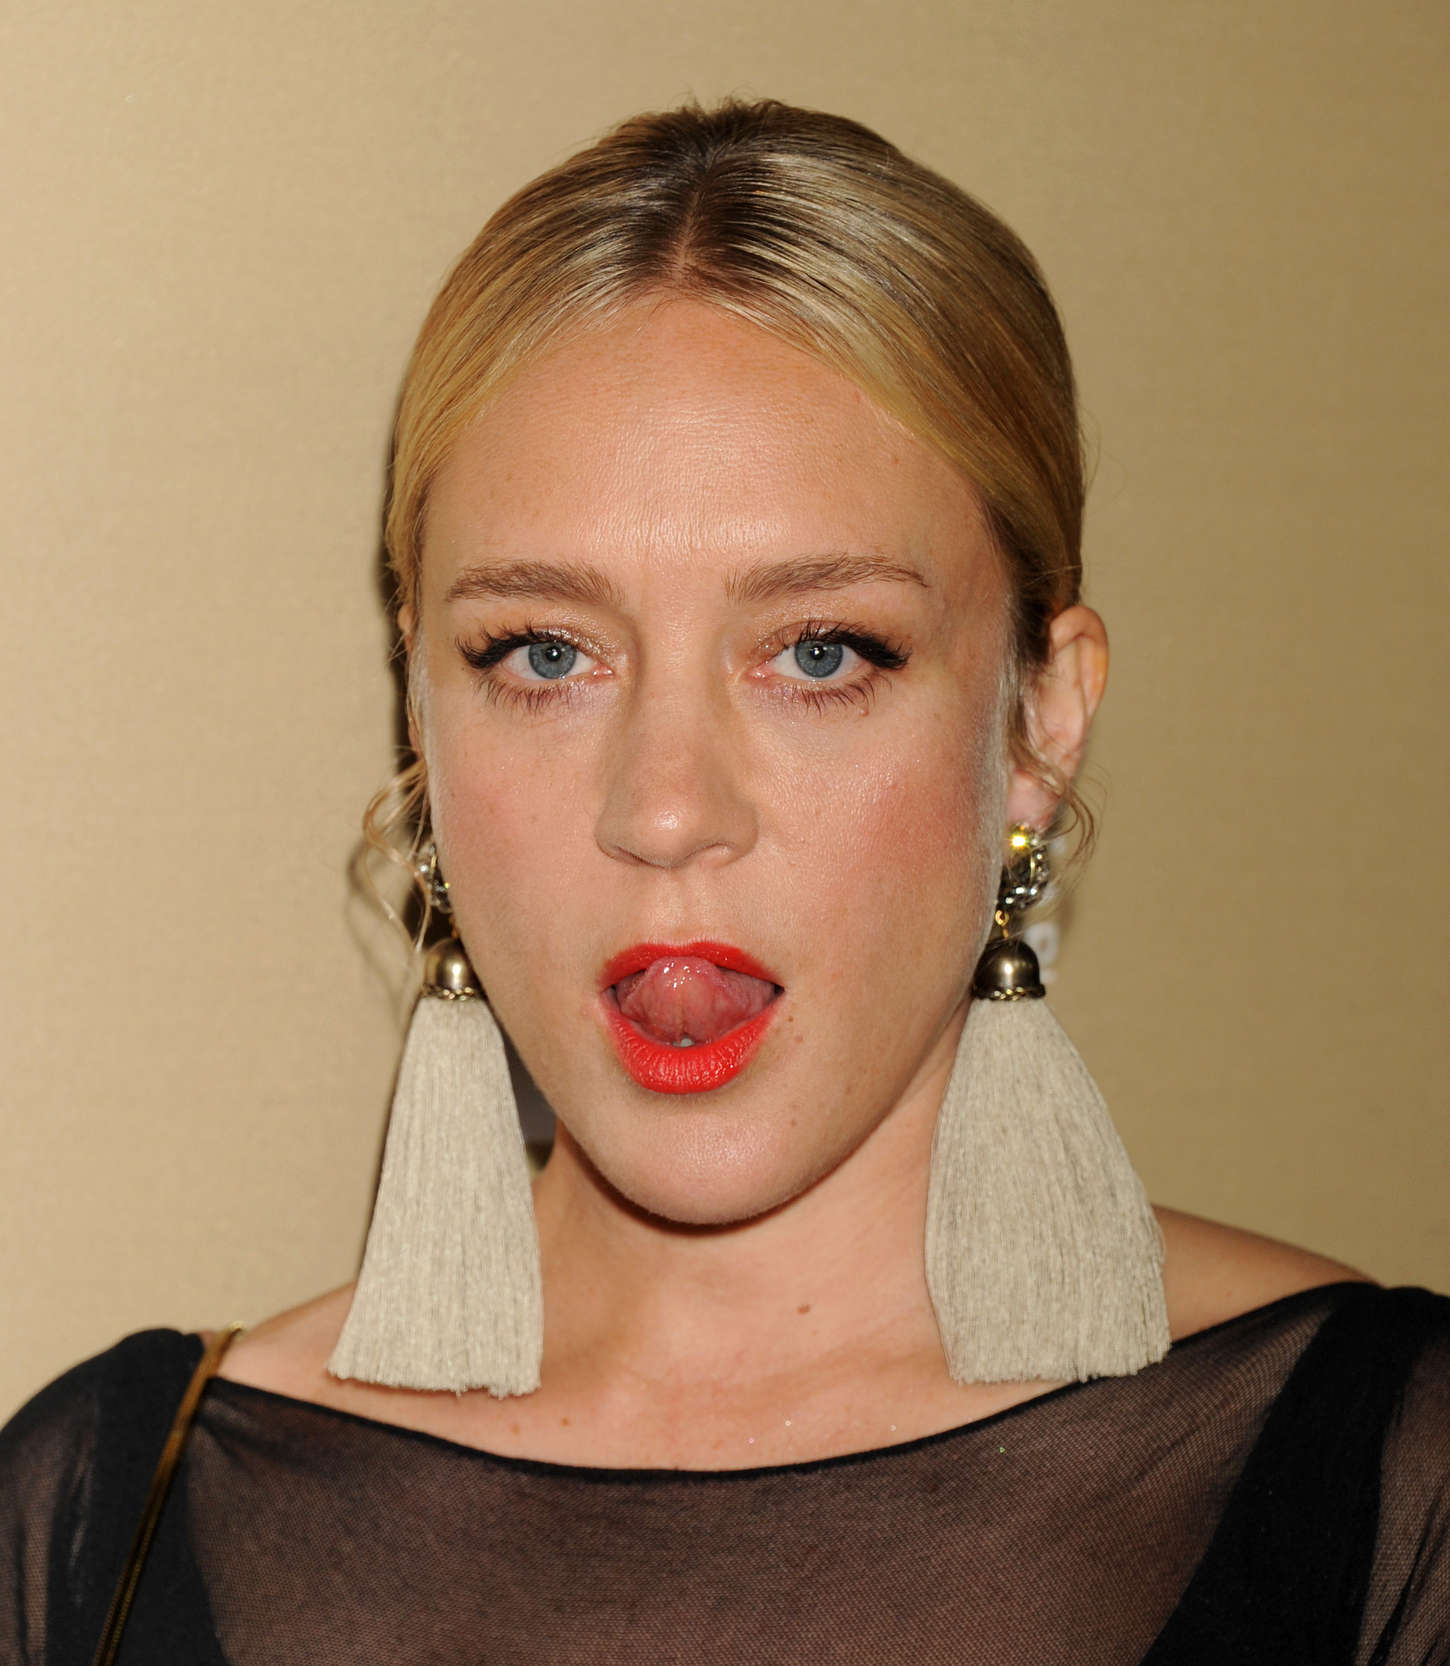 chloe-sevigny-earrings-red-lipstick